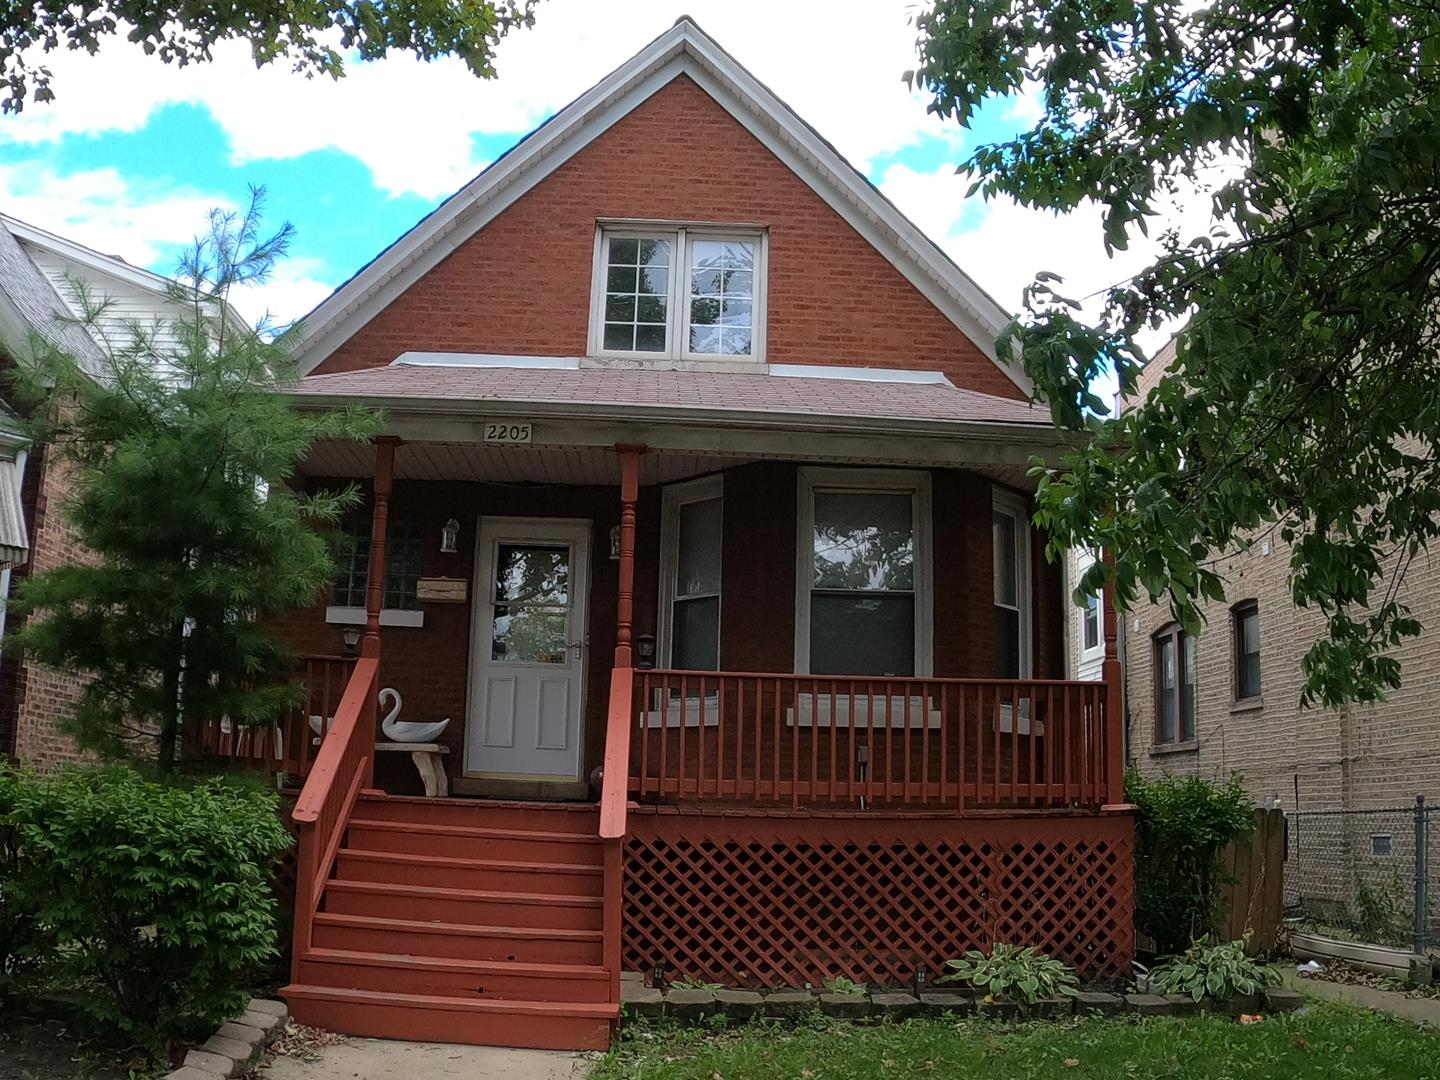 2205 N Kedvale Avenue, Chicago, IL 60639 - #: 10863865